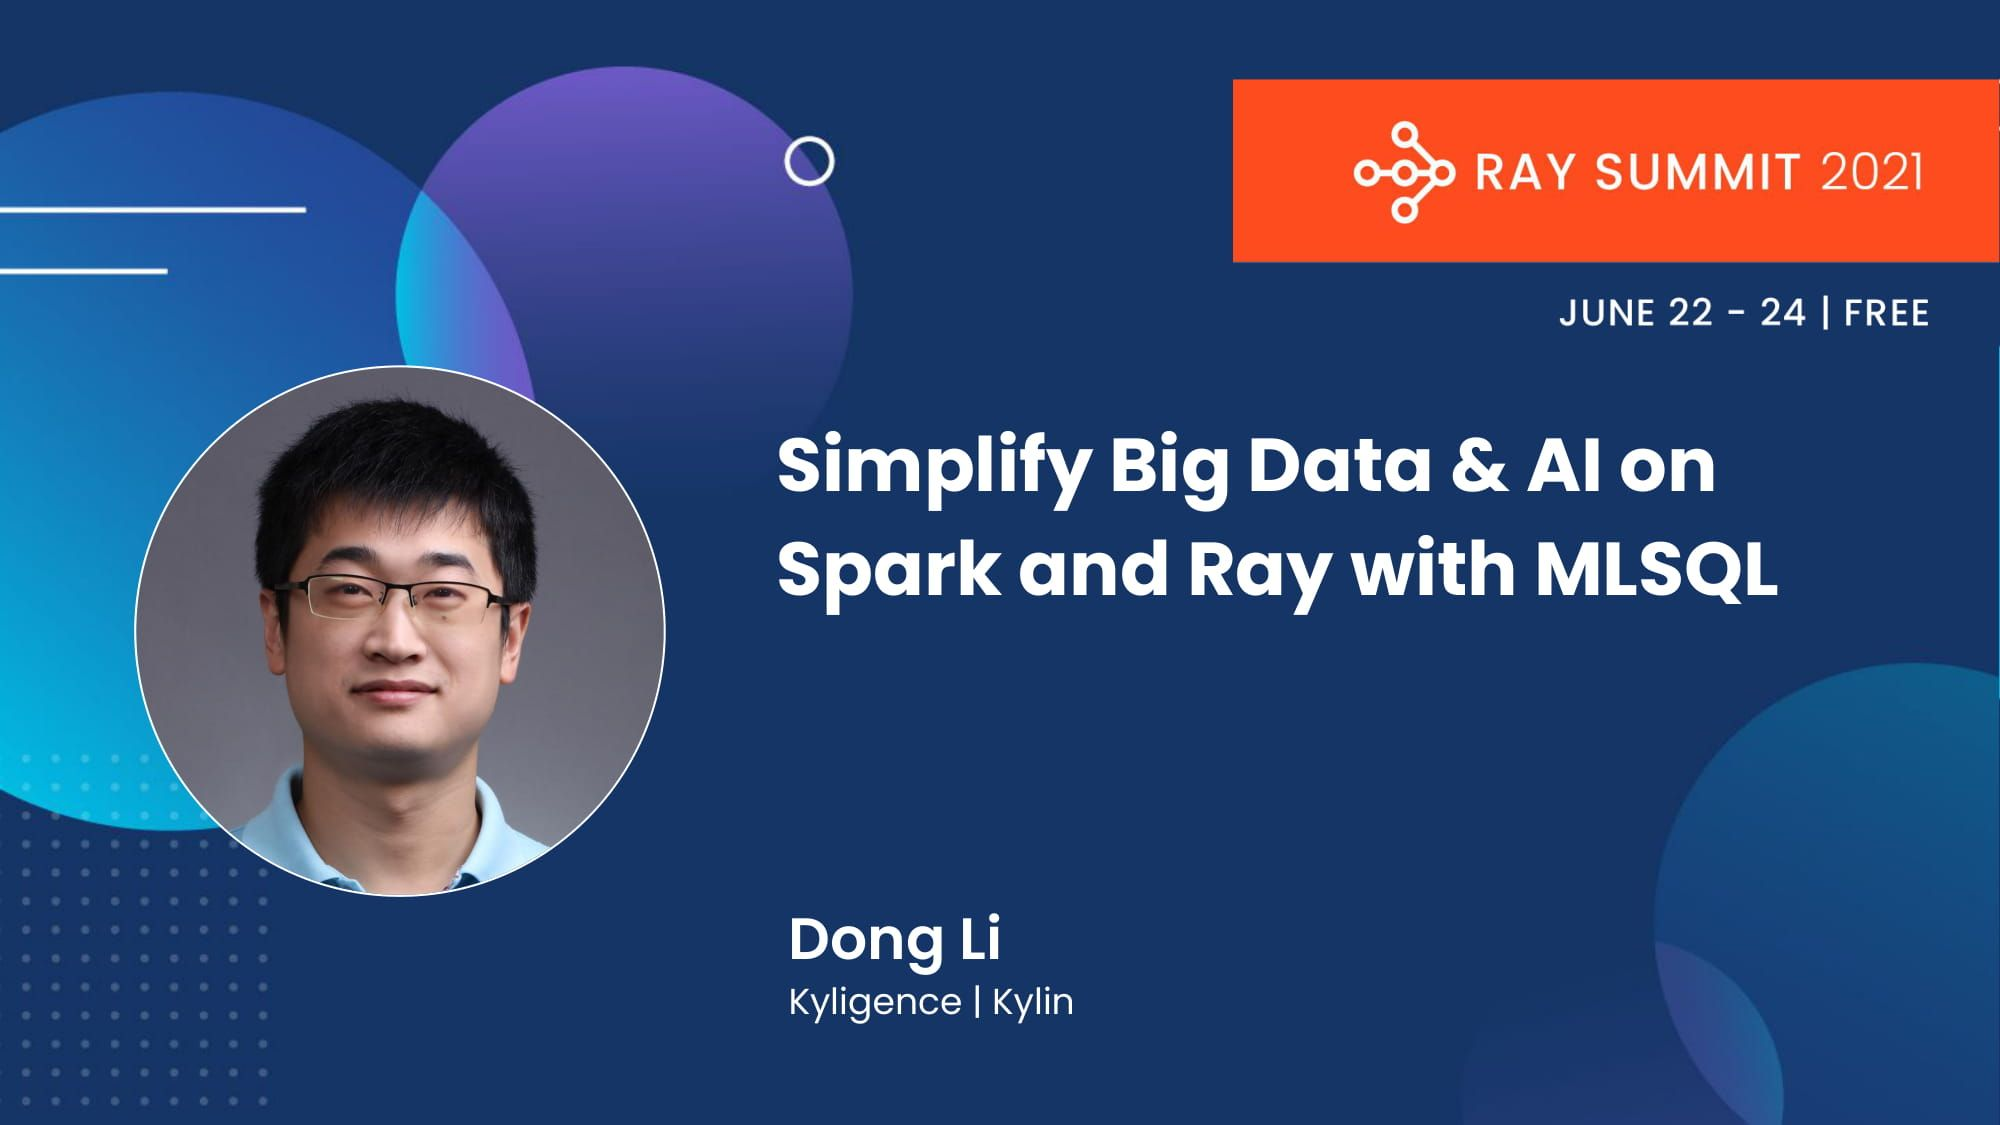 simplify big data and AI on spark and ray with mlsql